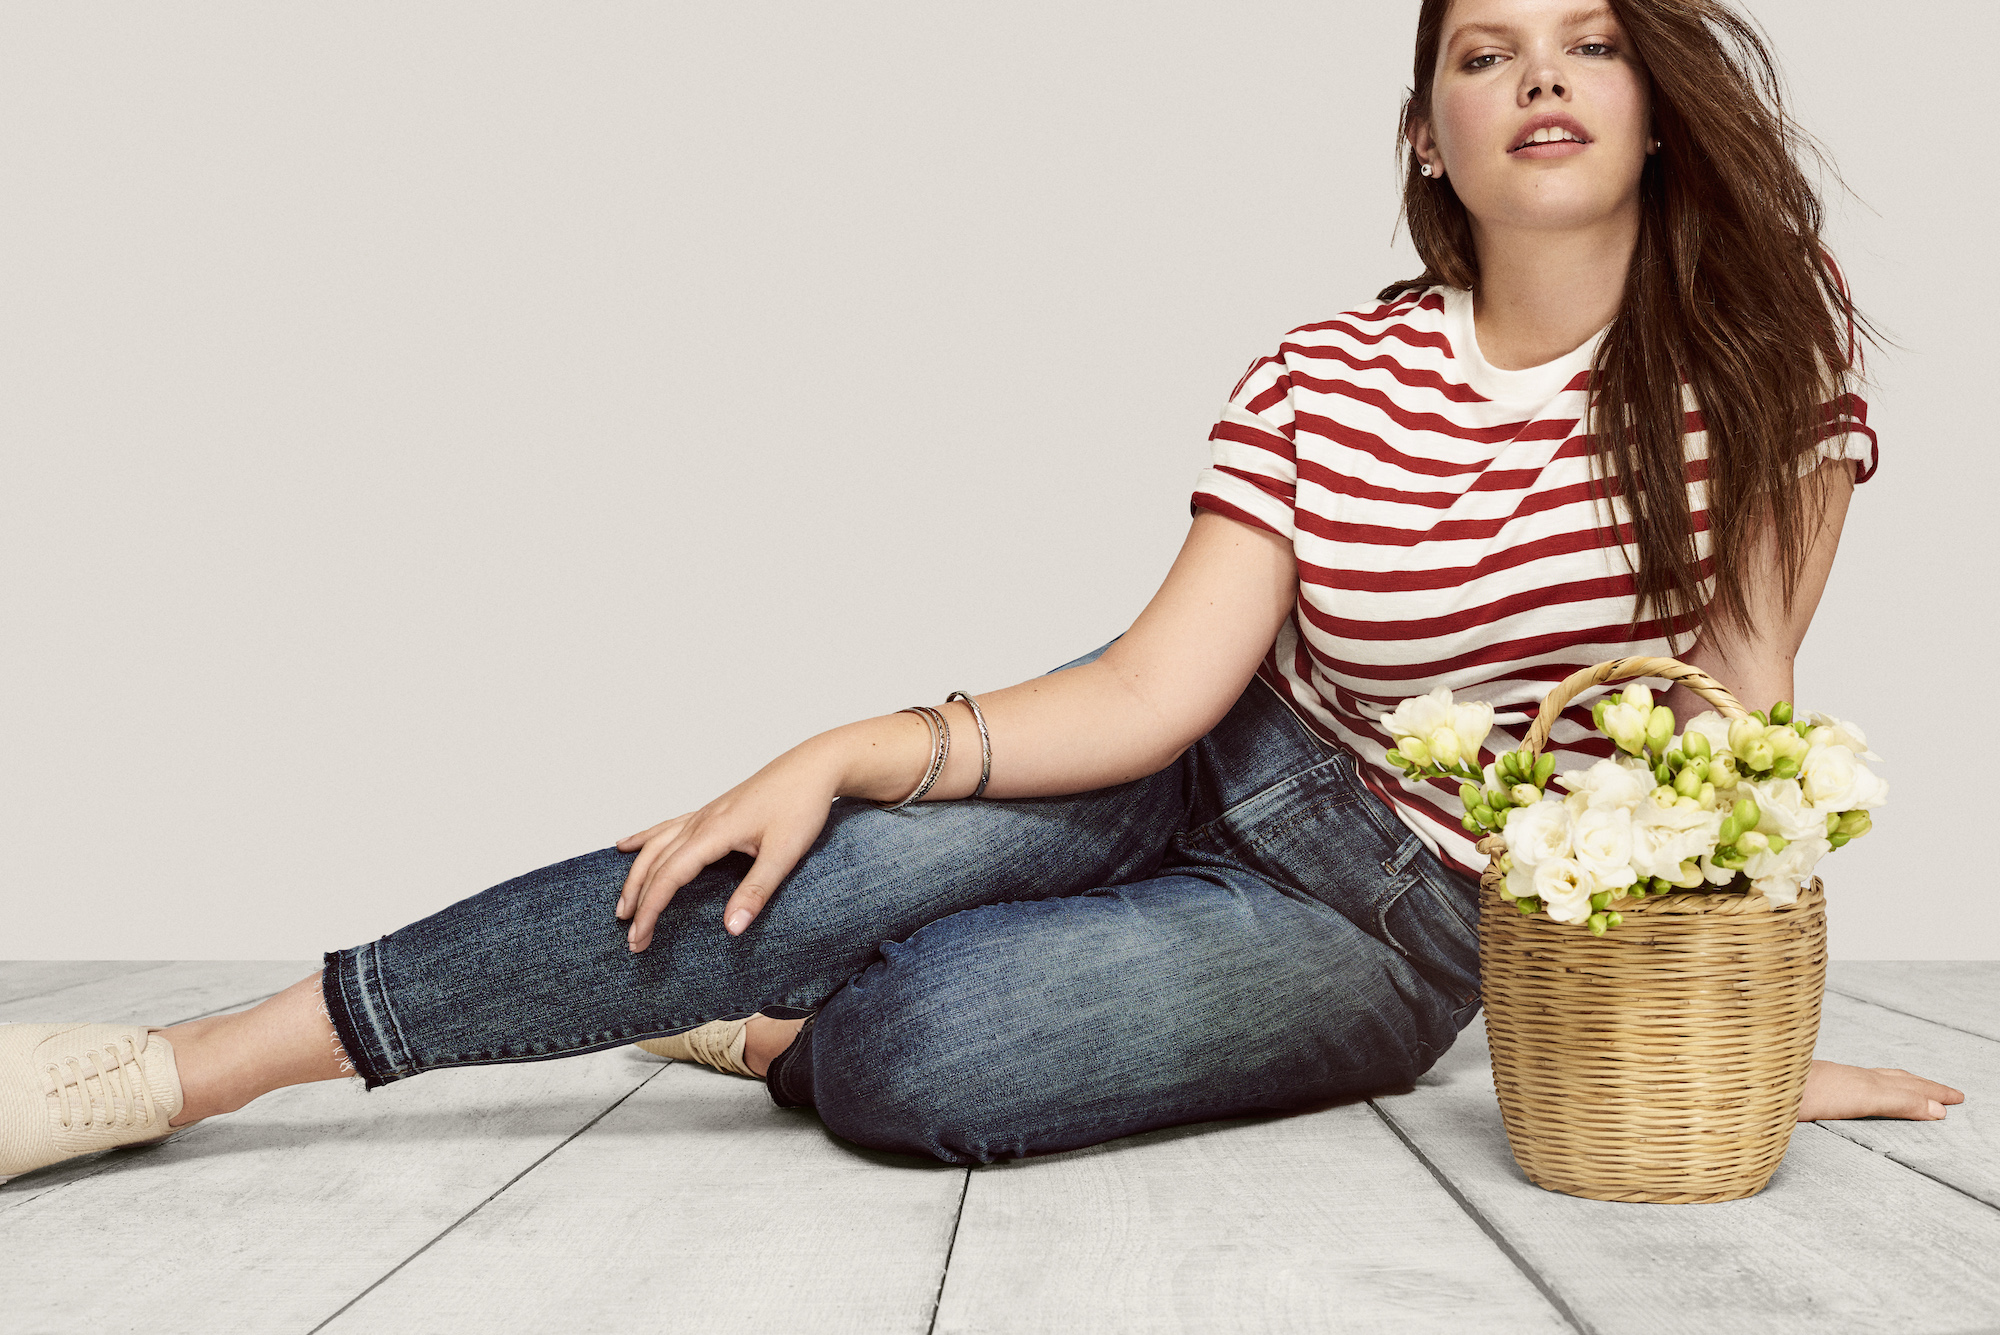 A model wearing blue jeans and a striped shirt